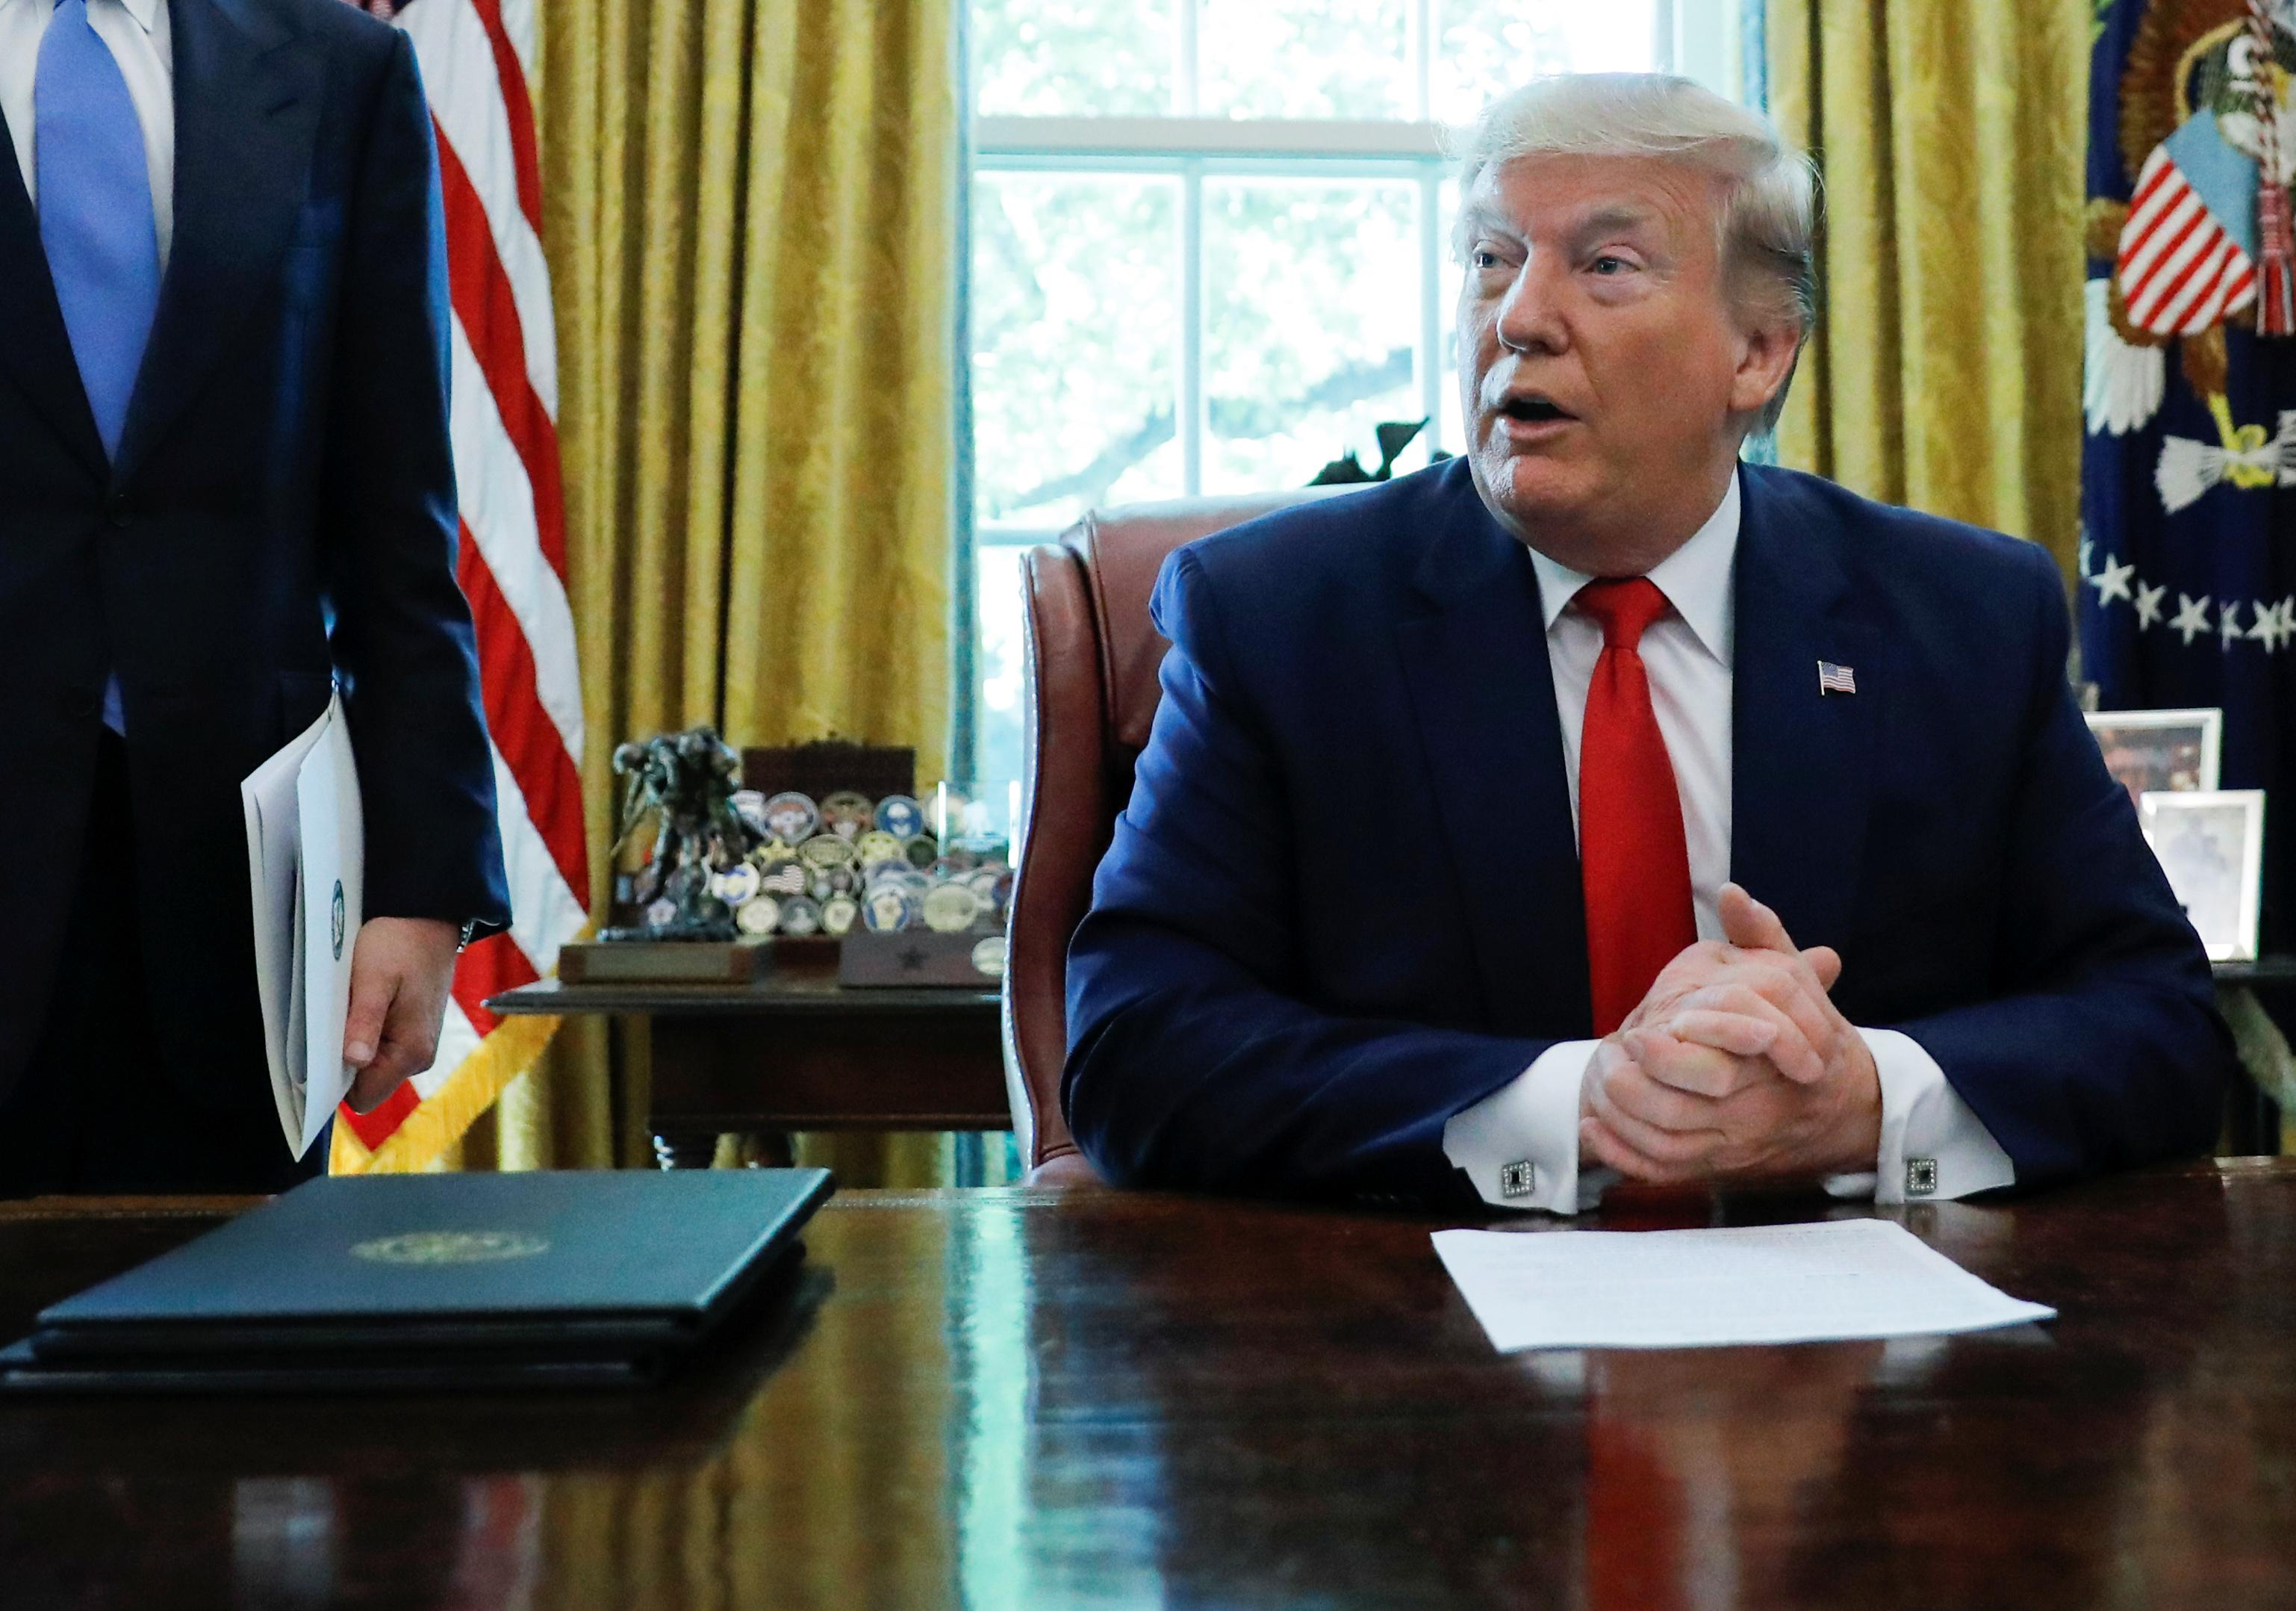 Trump slams Iran's leaders, says U.S. in 'strong position'